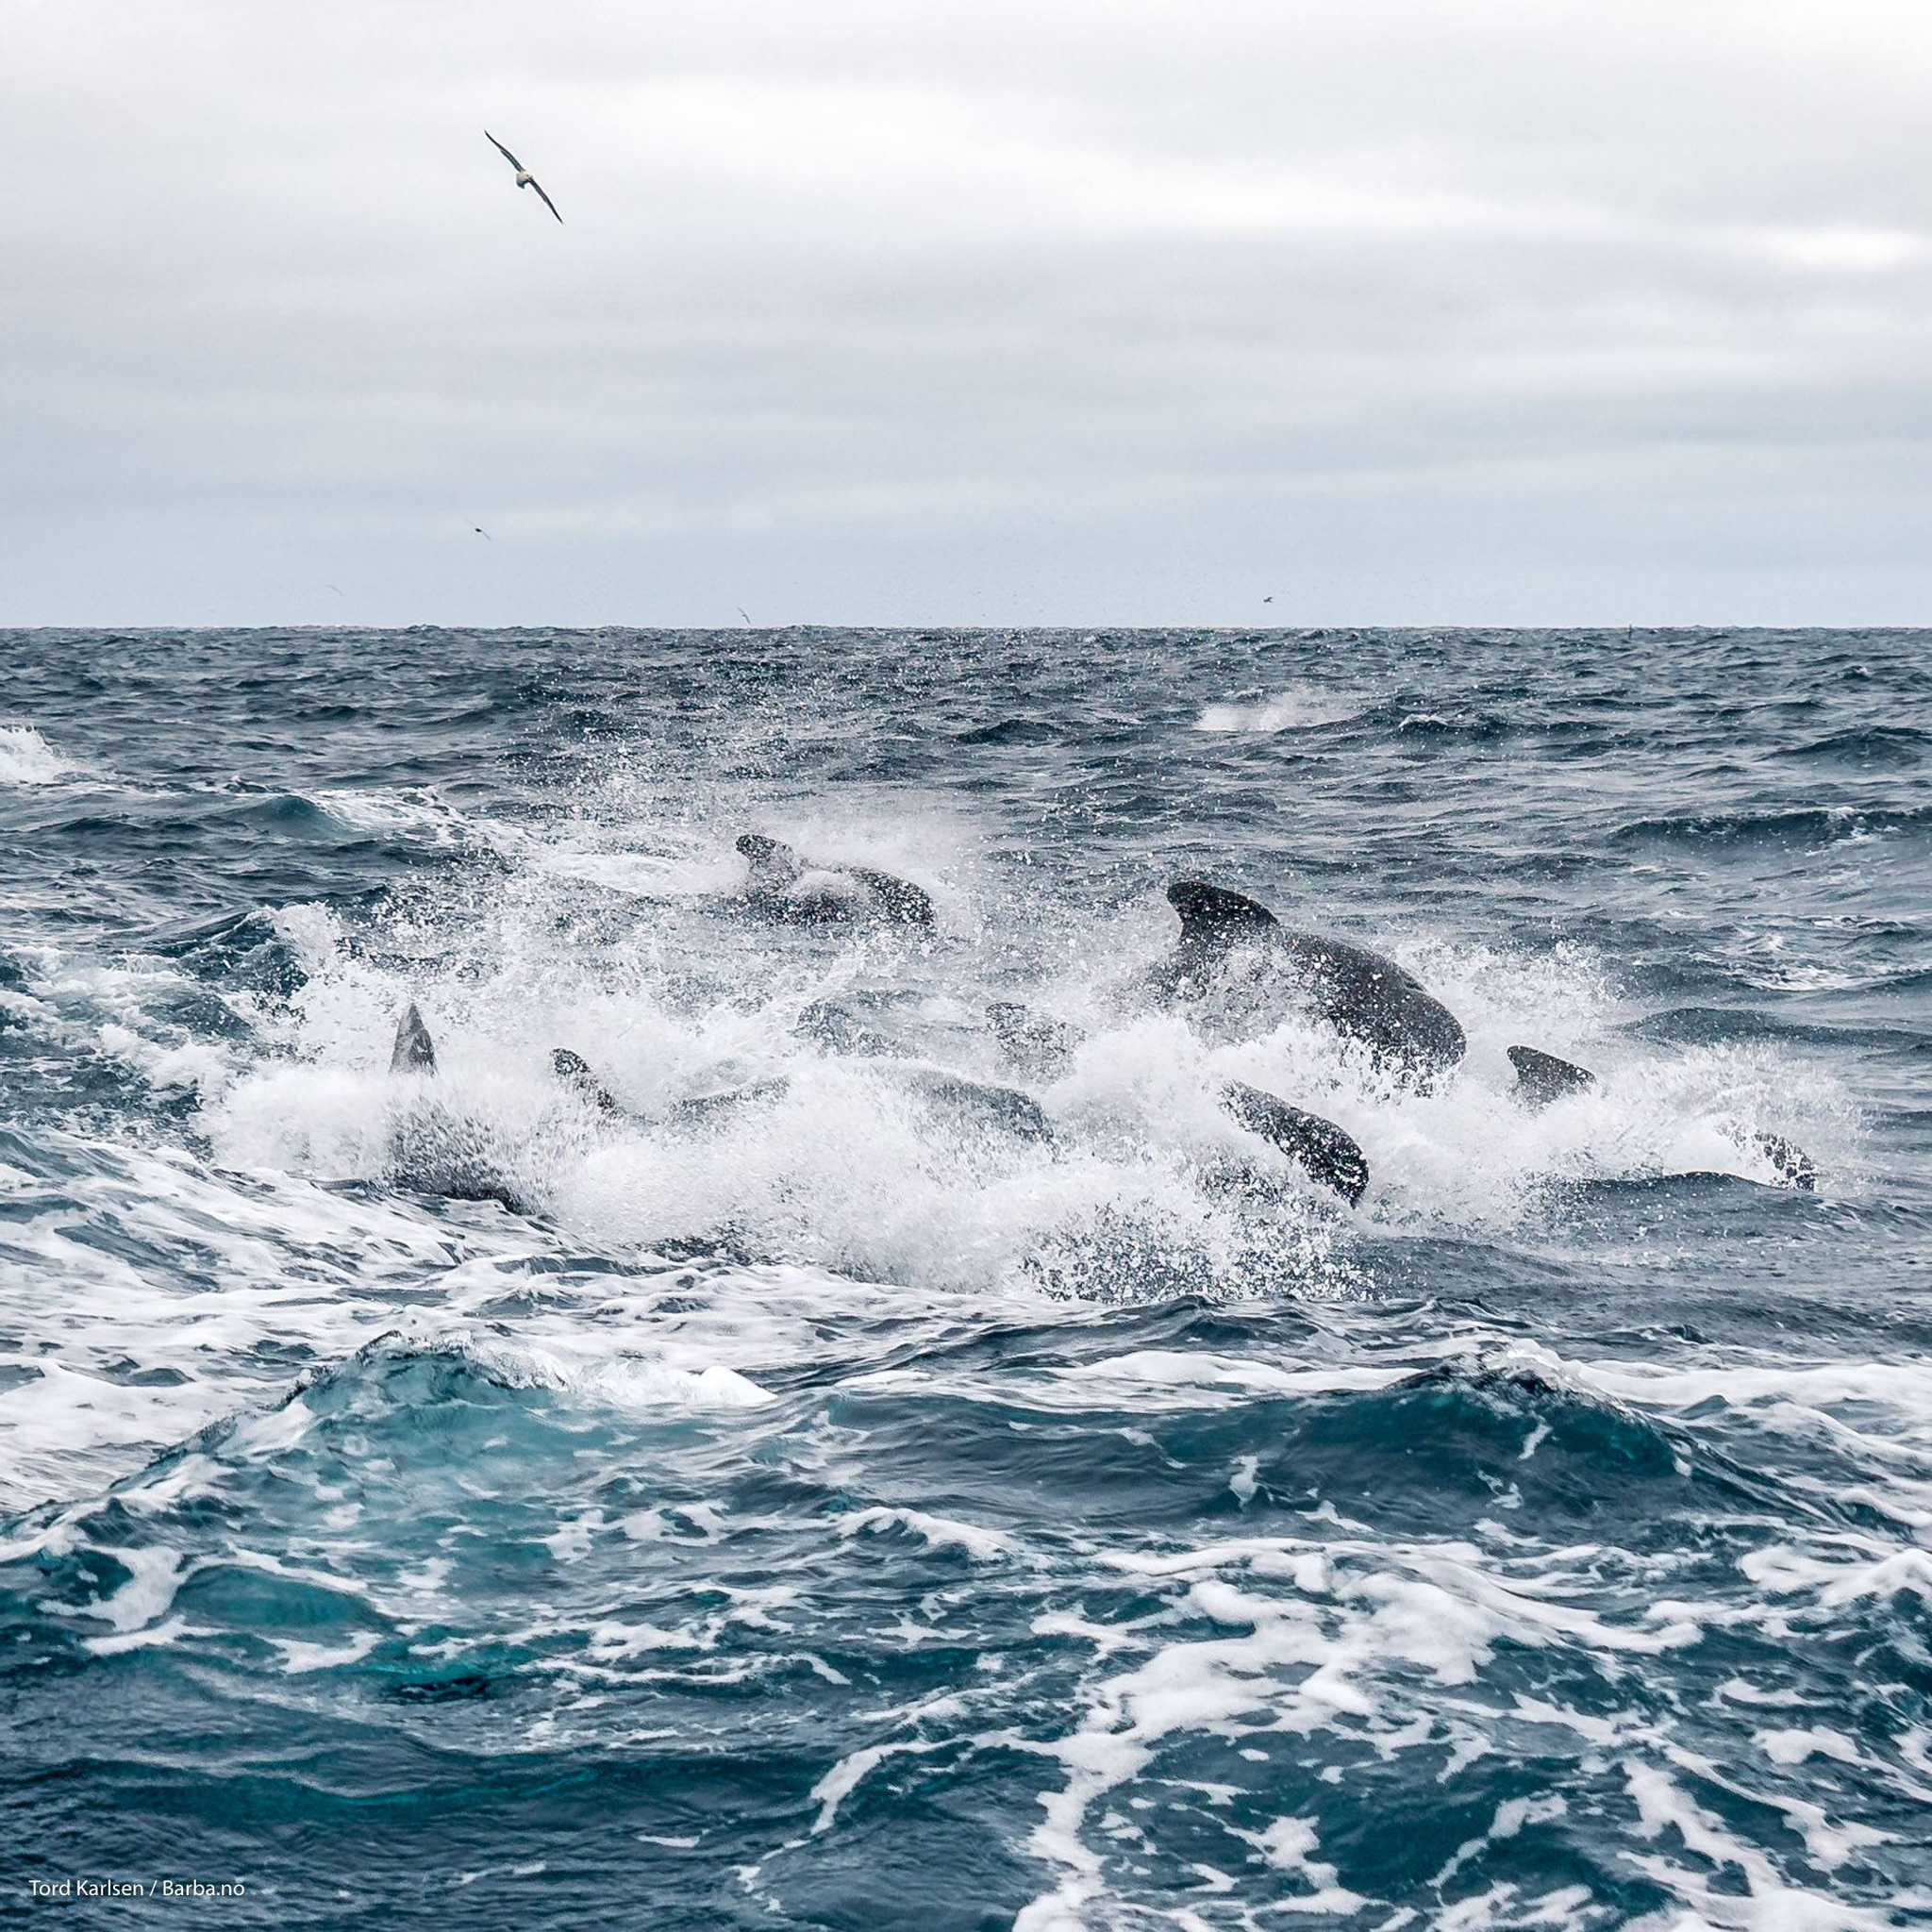 A small selection of the pilot whales trailing our boat. Photo: Tord Karlsen / Barba.no